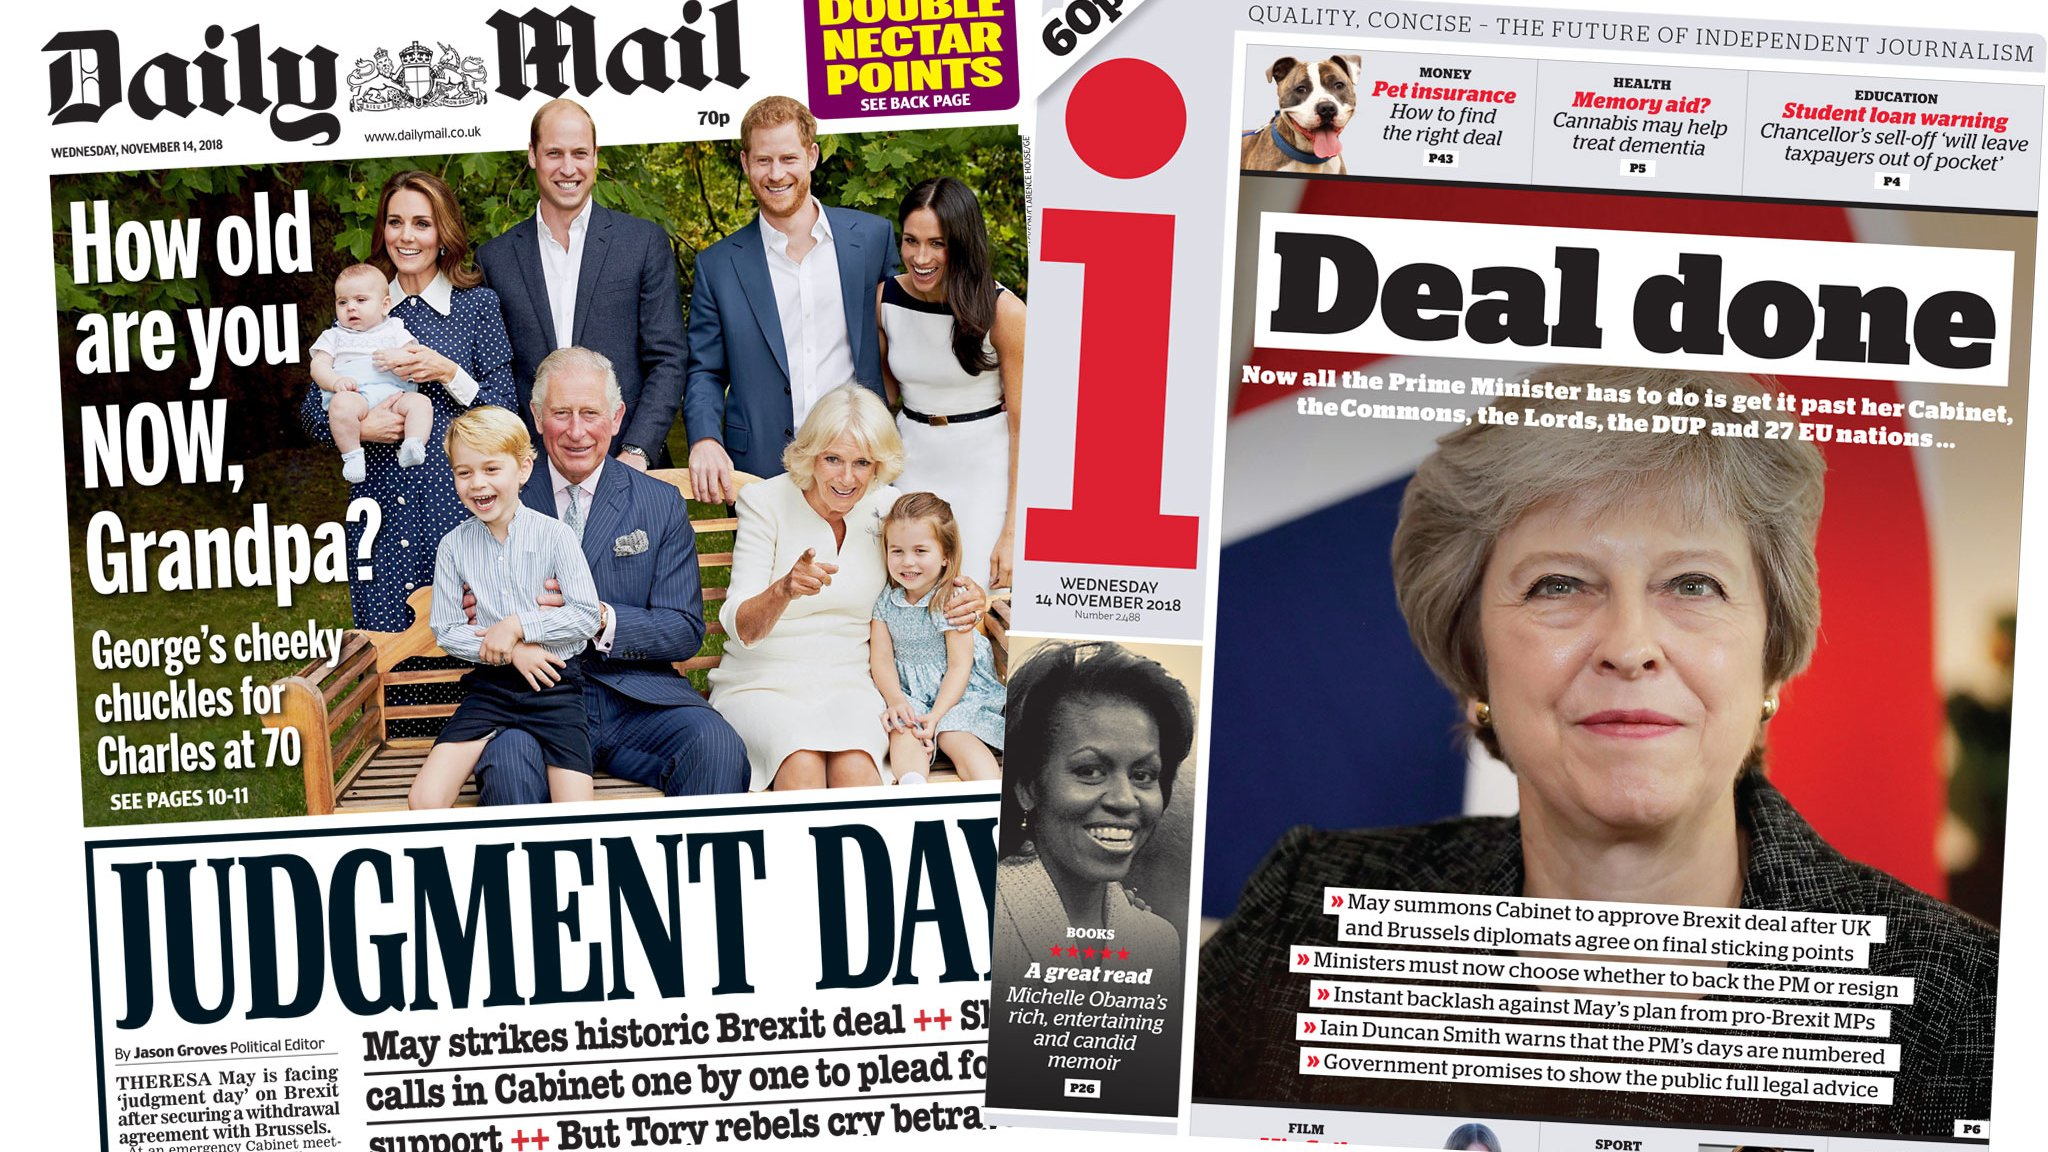 The Papers: 'Moment of truth' for Brexit deal